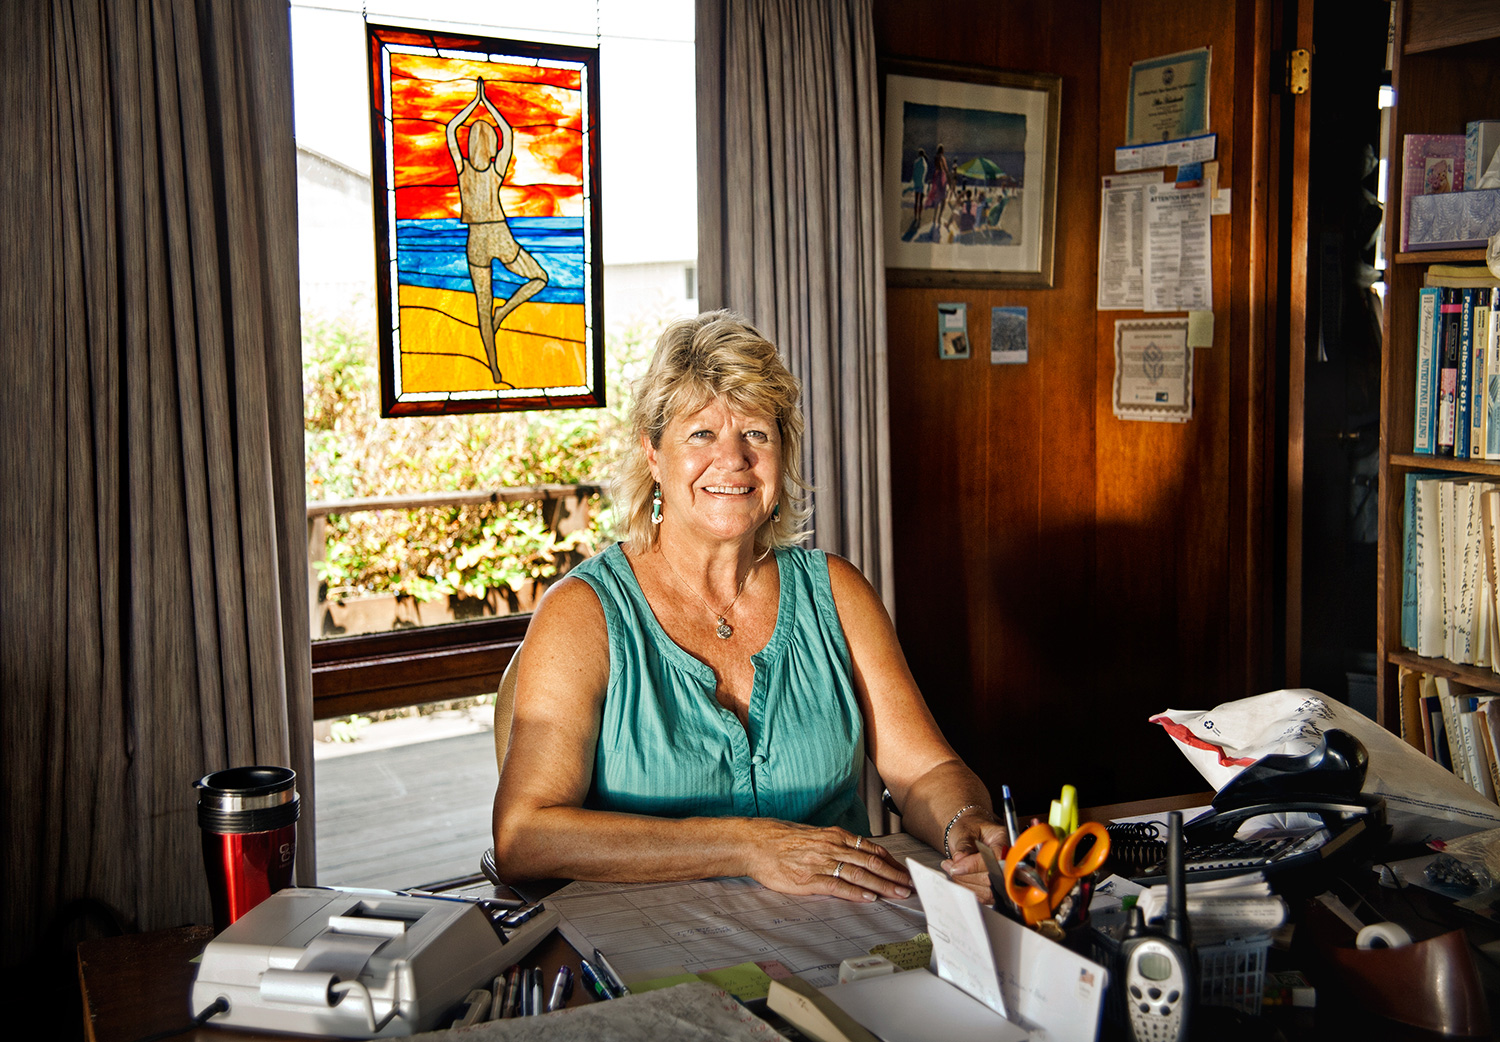 Connie Keller, Manger of East Deck, 1992-2013, Ditch Plains Beach